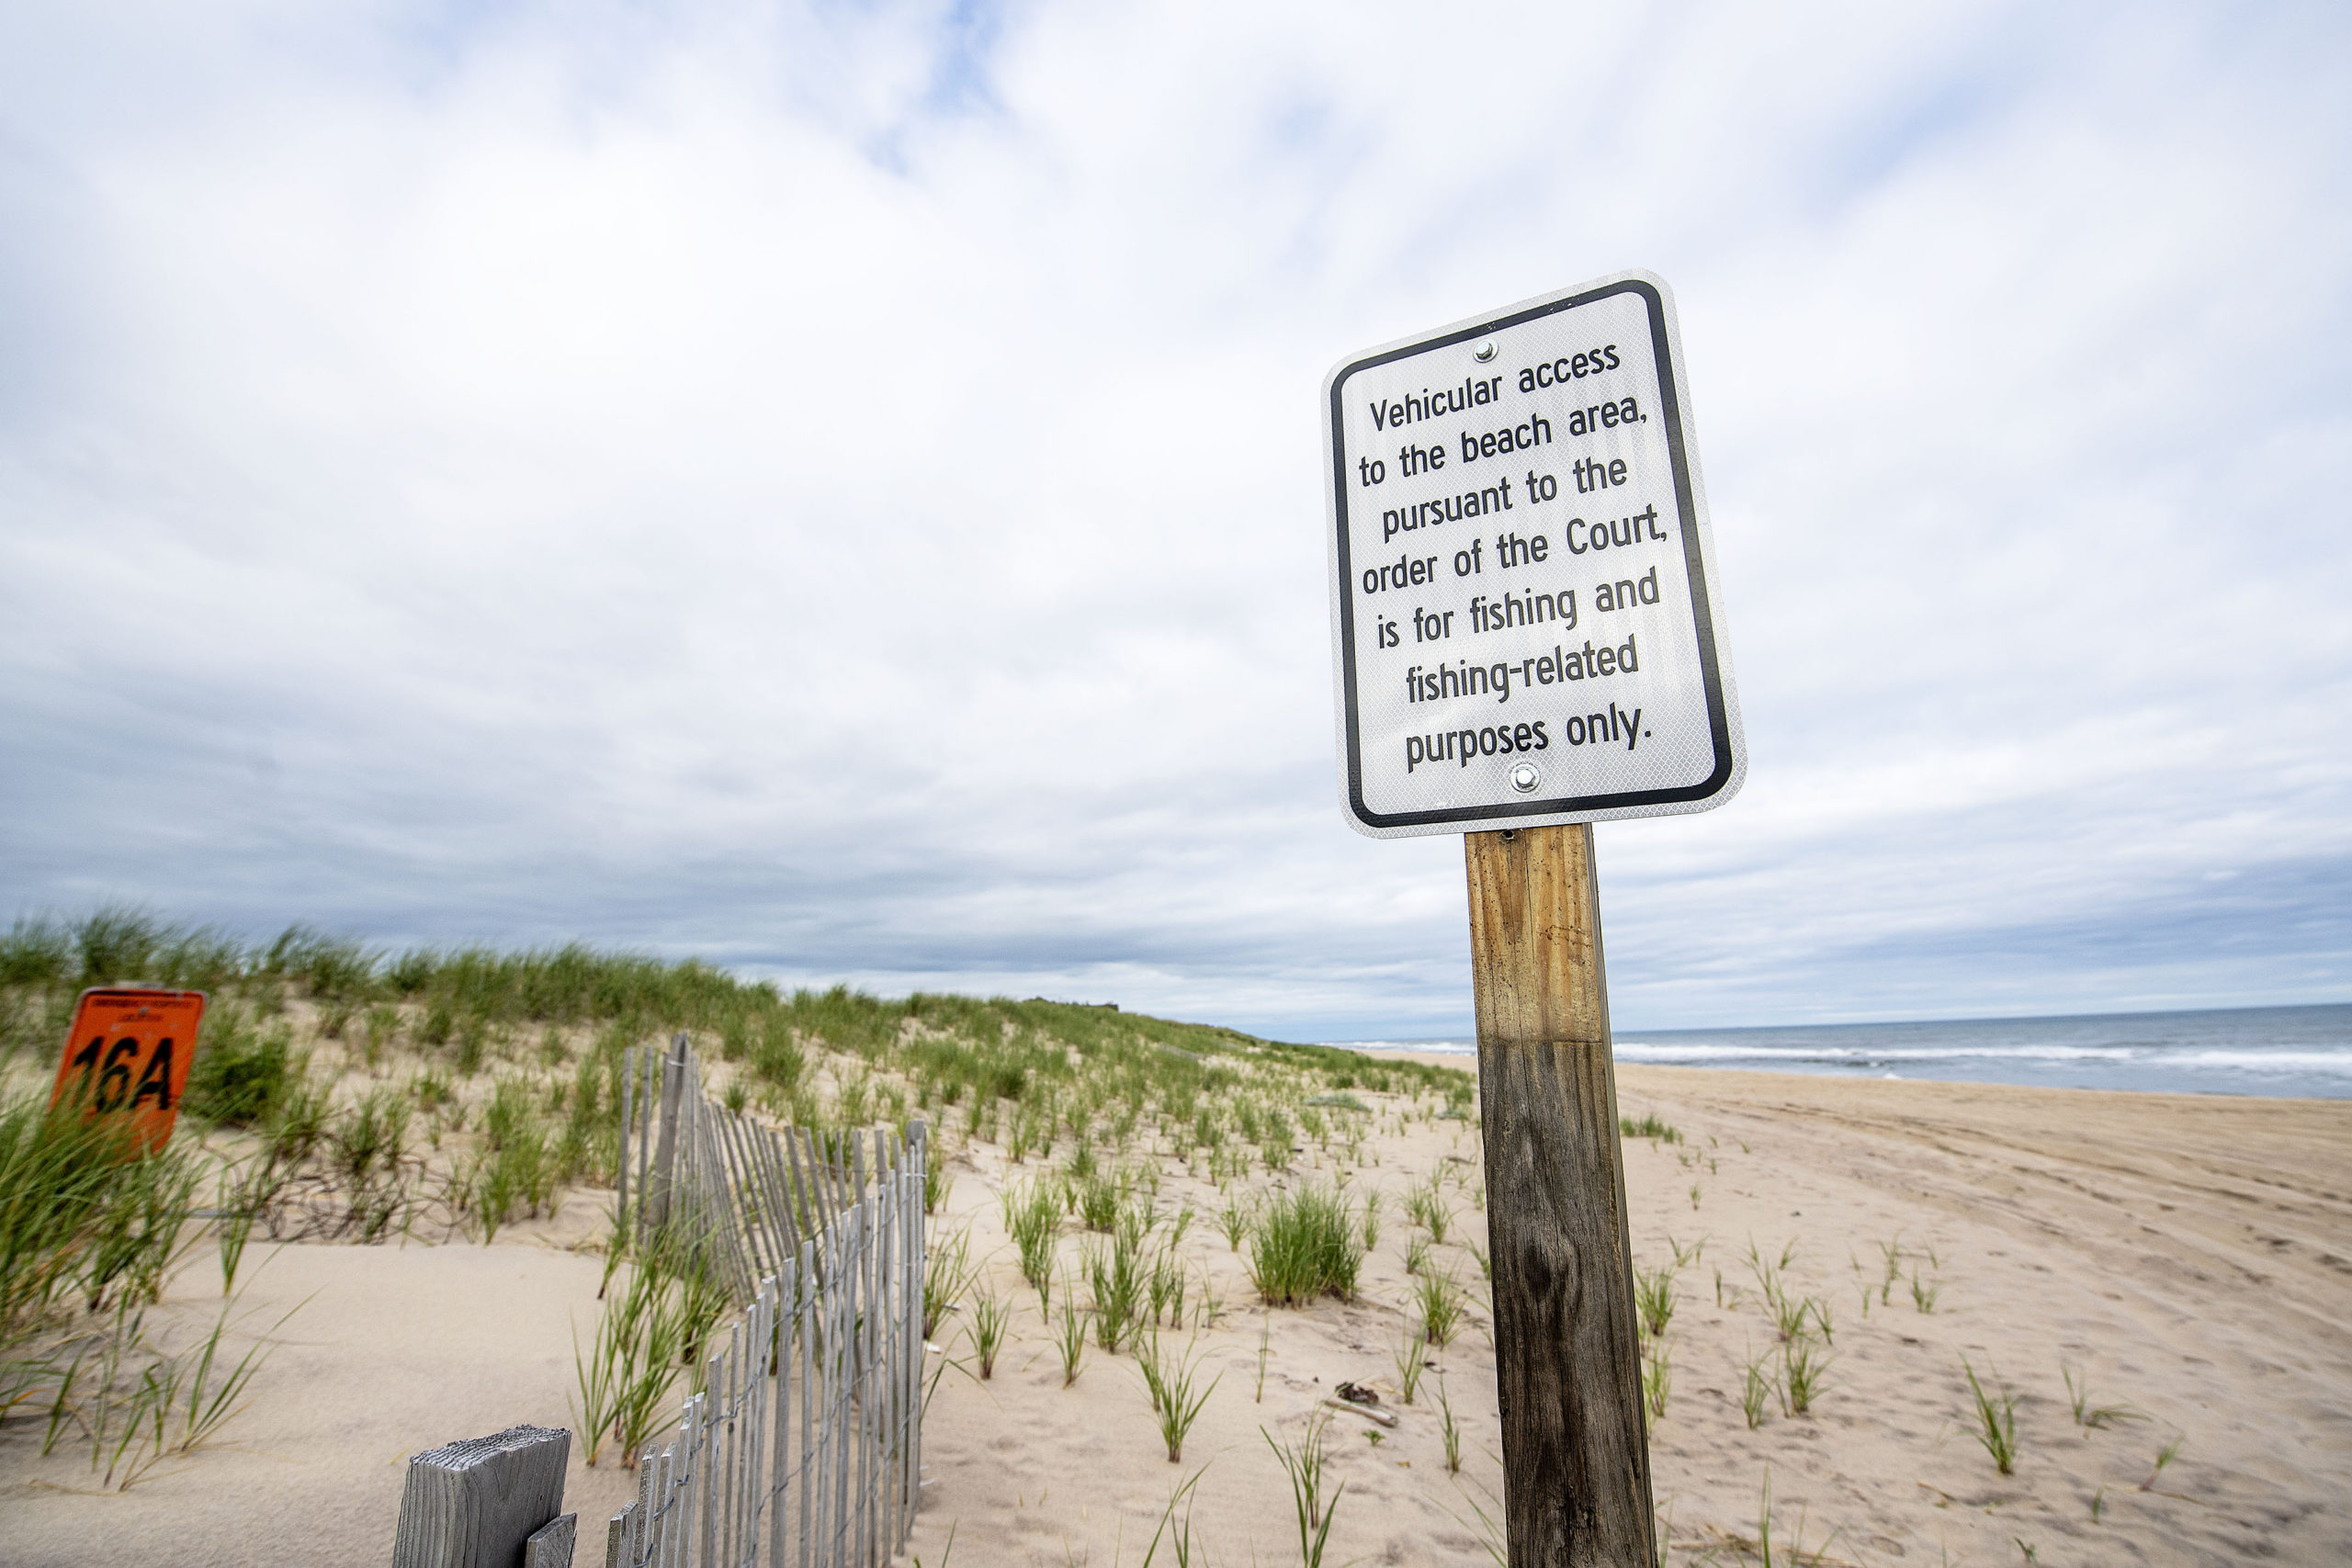 East Hampton Town has posted signs at